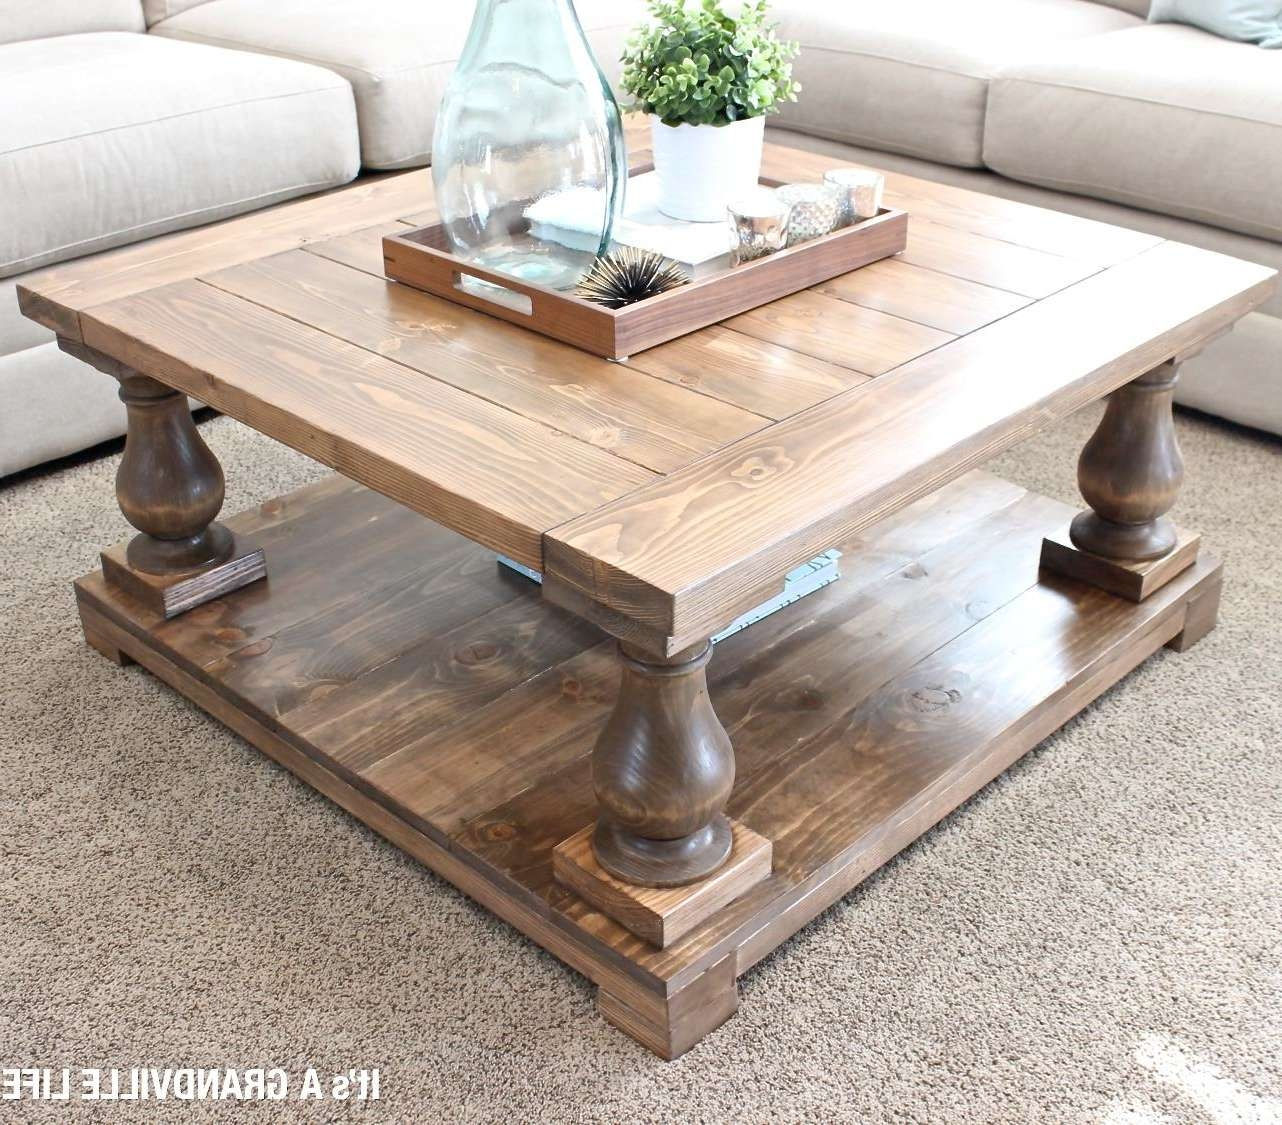 Furniture Diy Coffee Tables Ideas Hd Wallpaper Pictures Diy Modern Inside Newest French Country Coffee Tables (View 17 of 20)